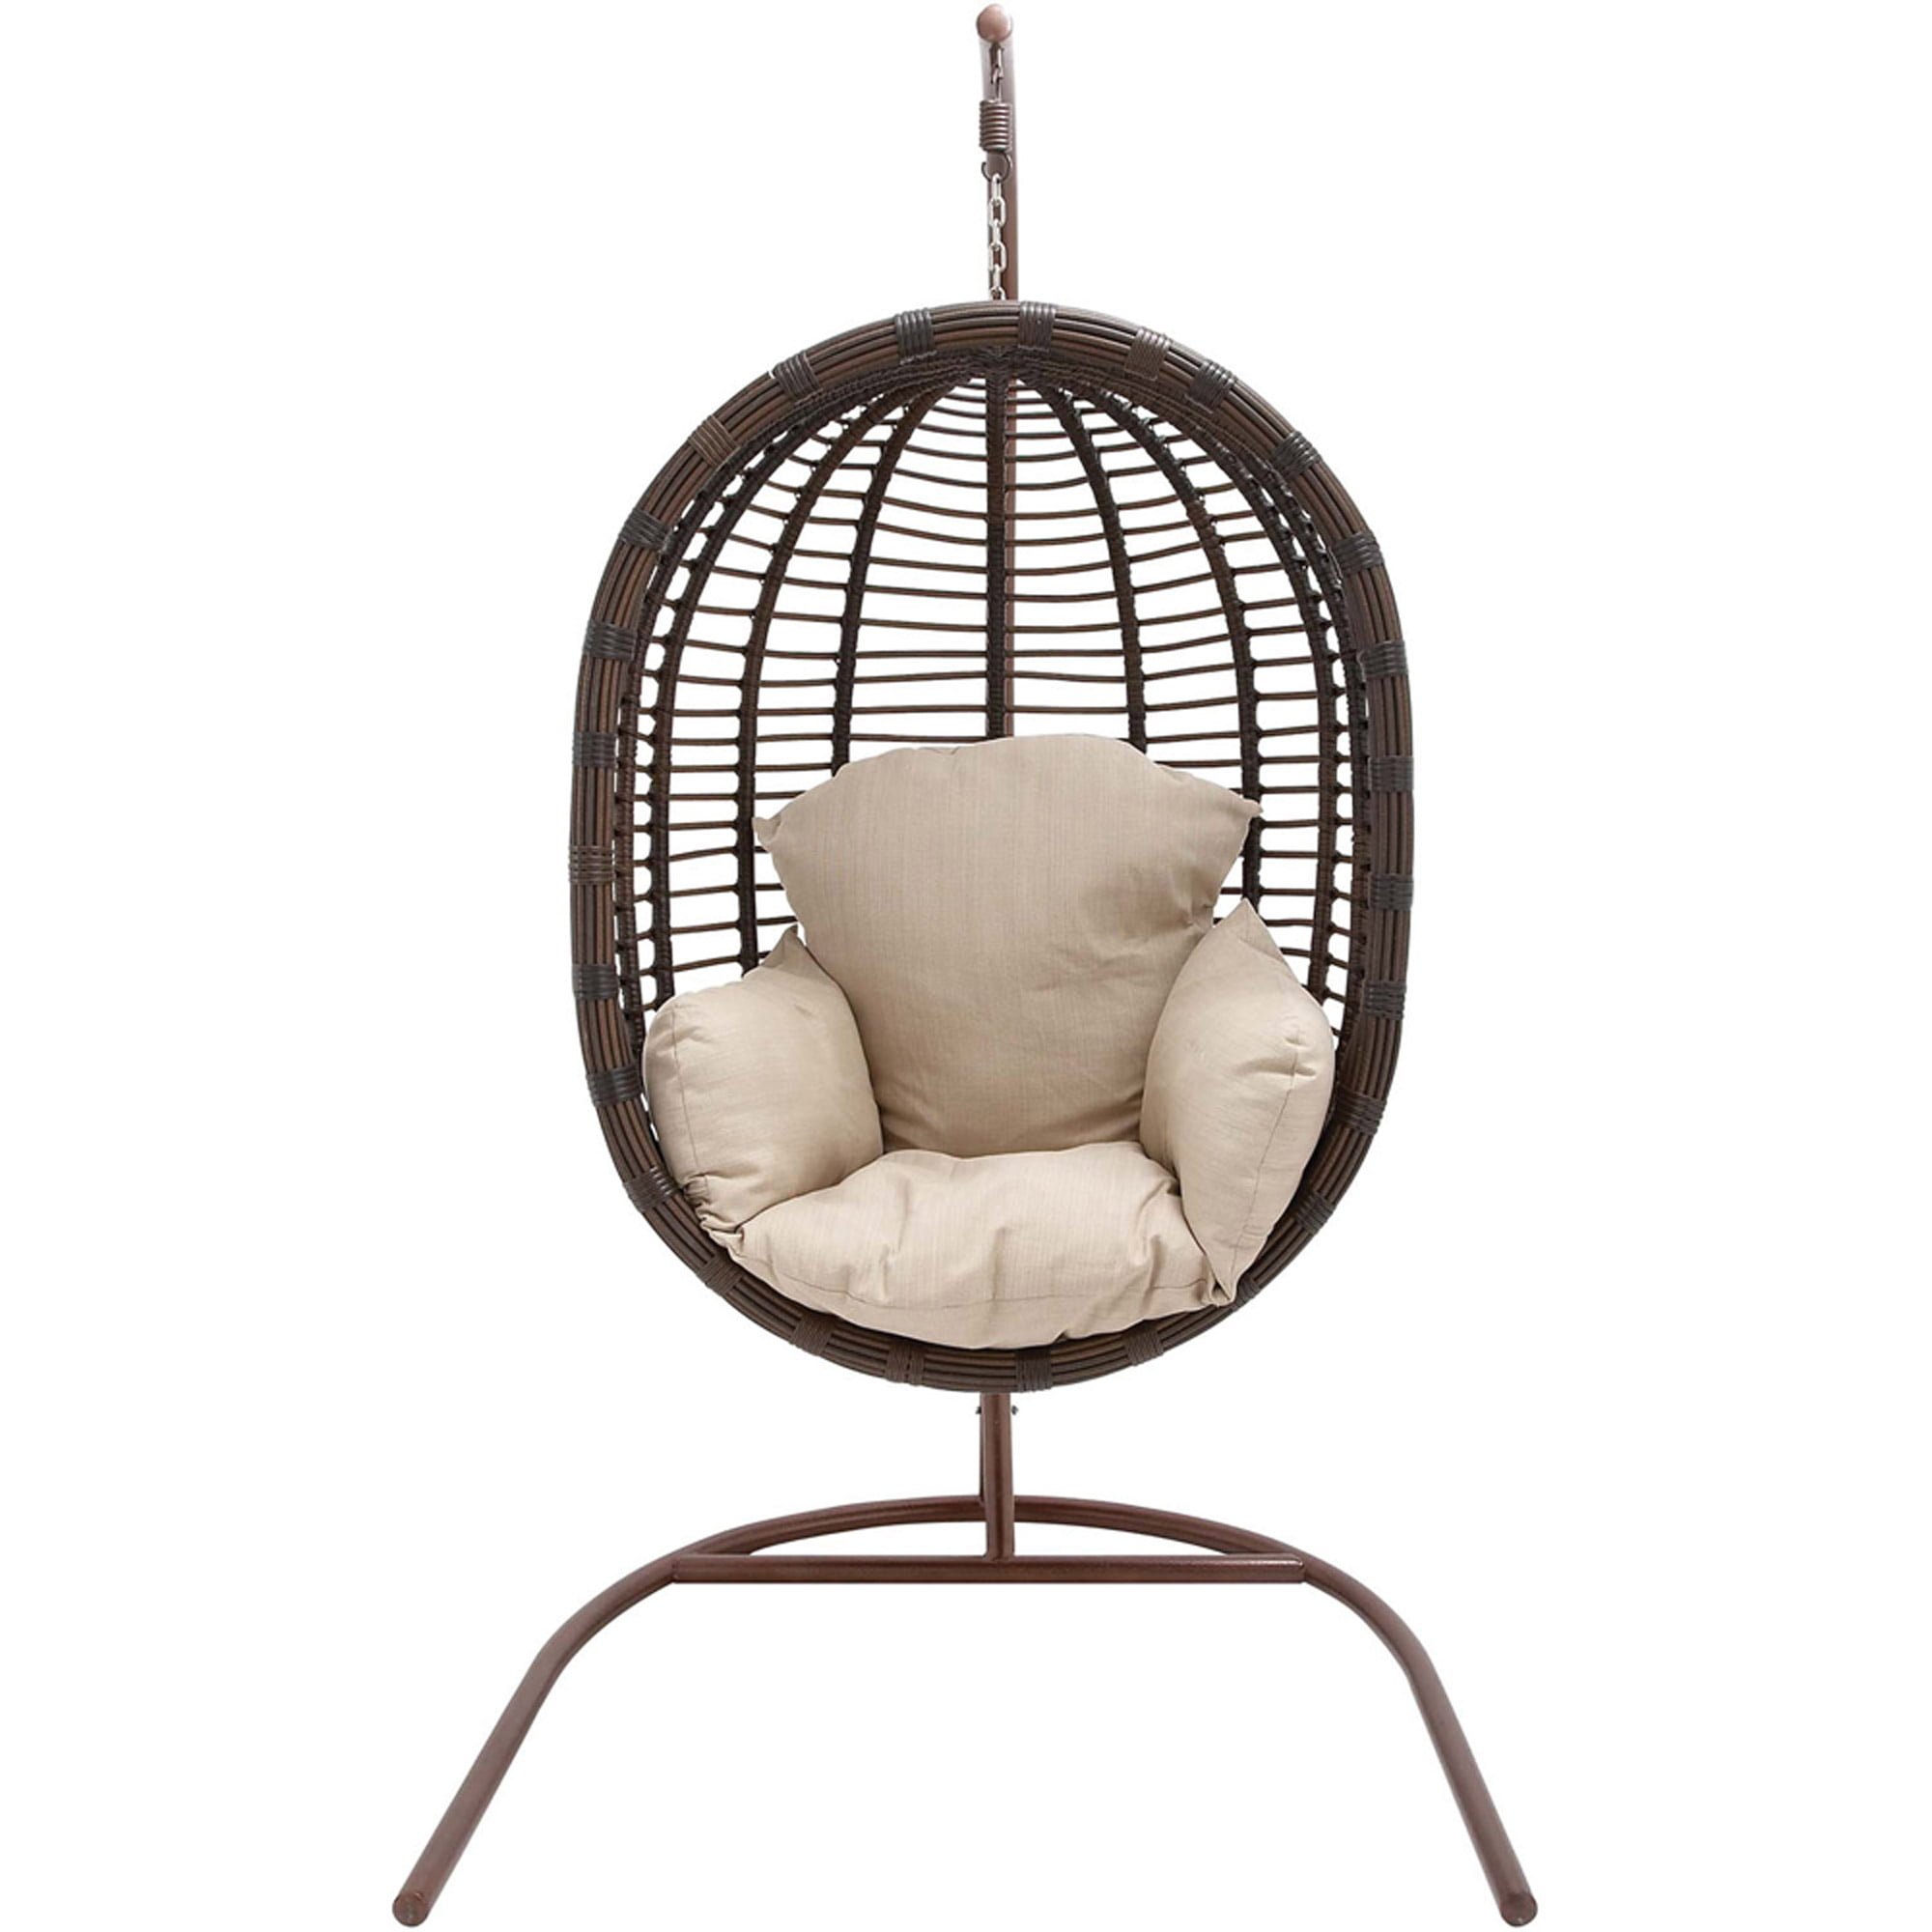 Hanover Outdoor Furniture Rattan Wicker Pod Swing Chair with Full